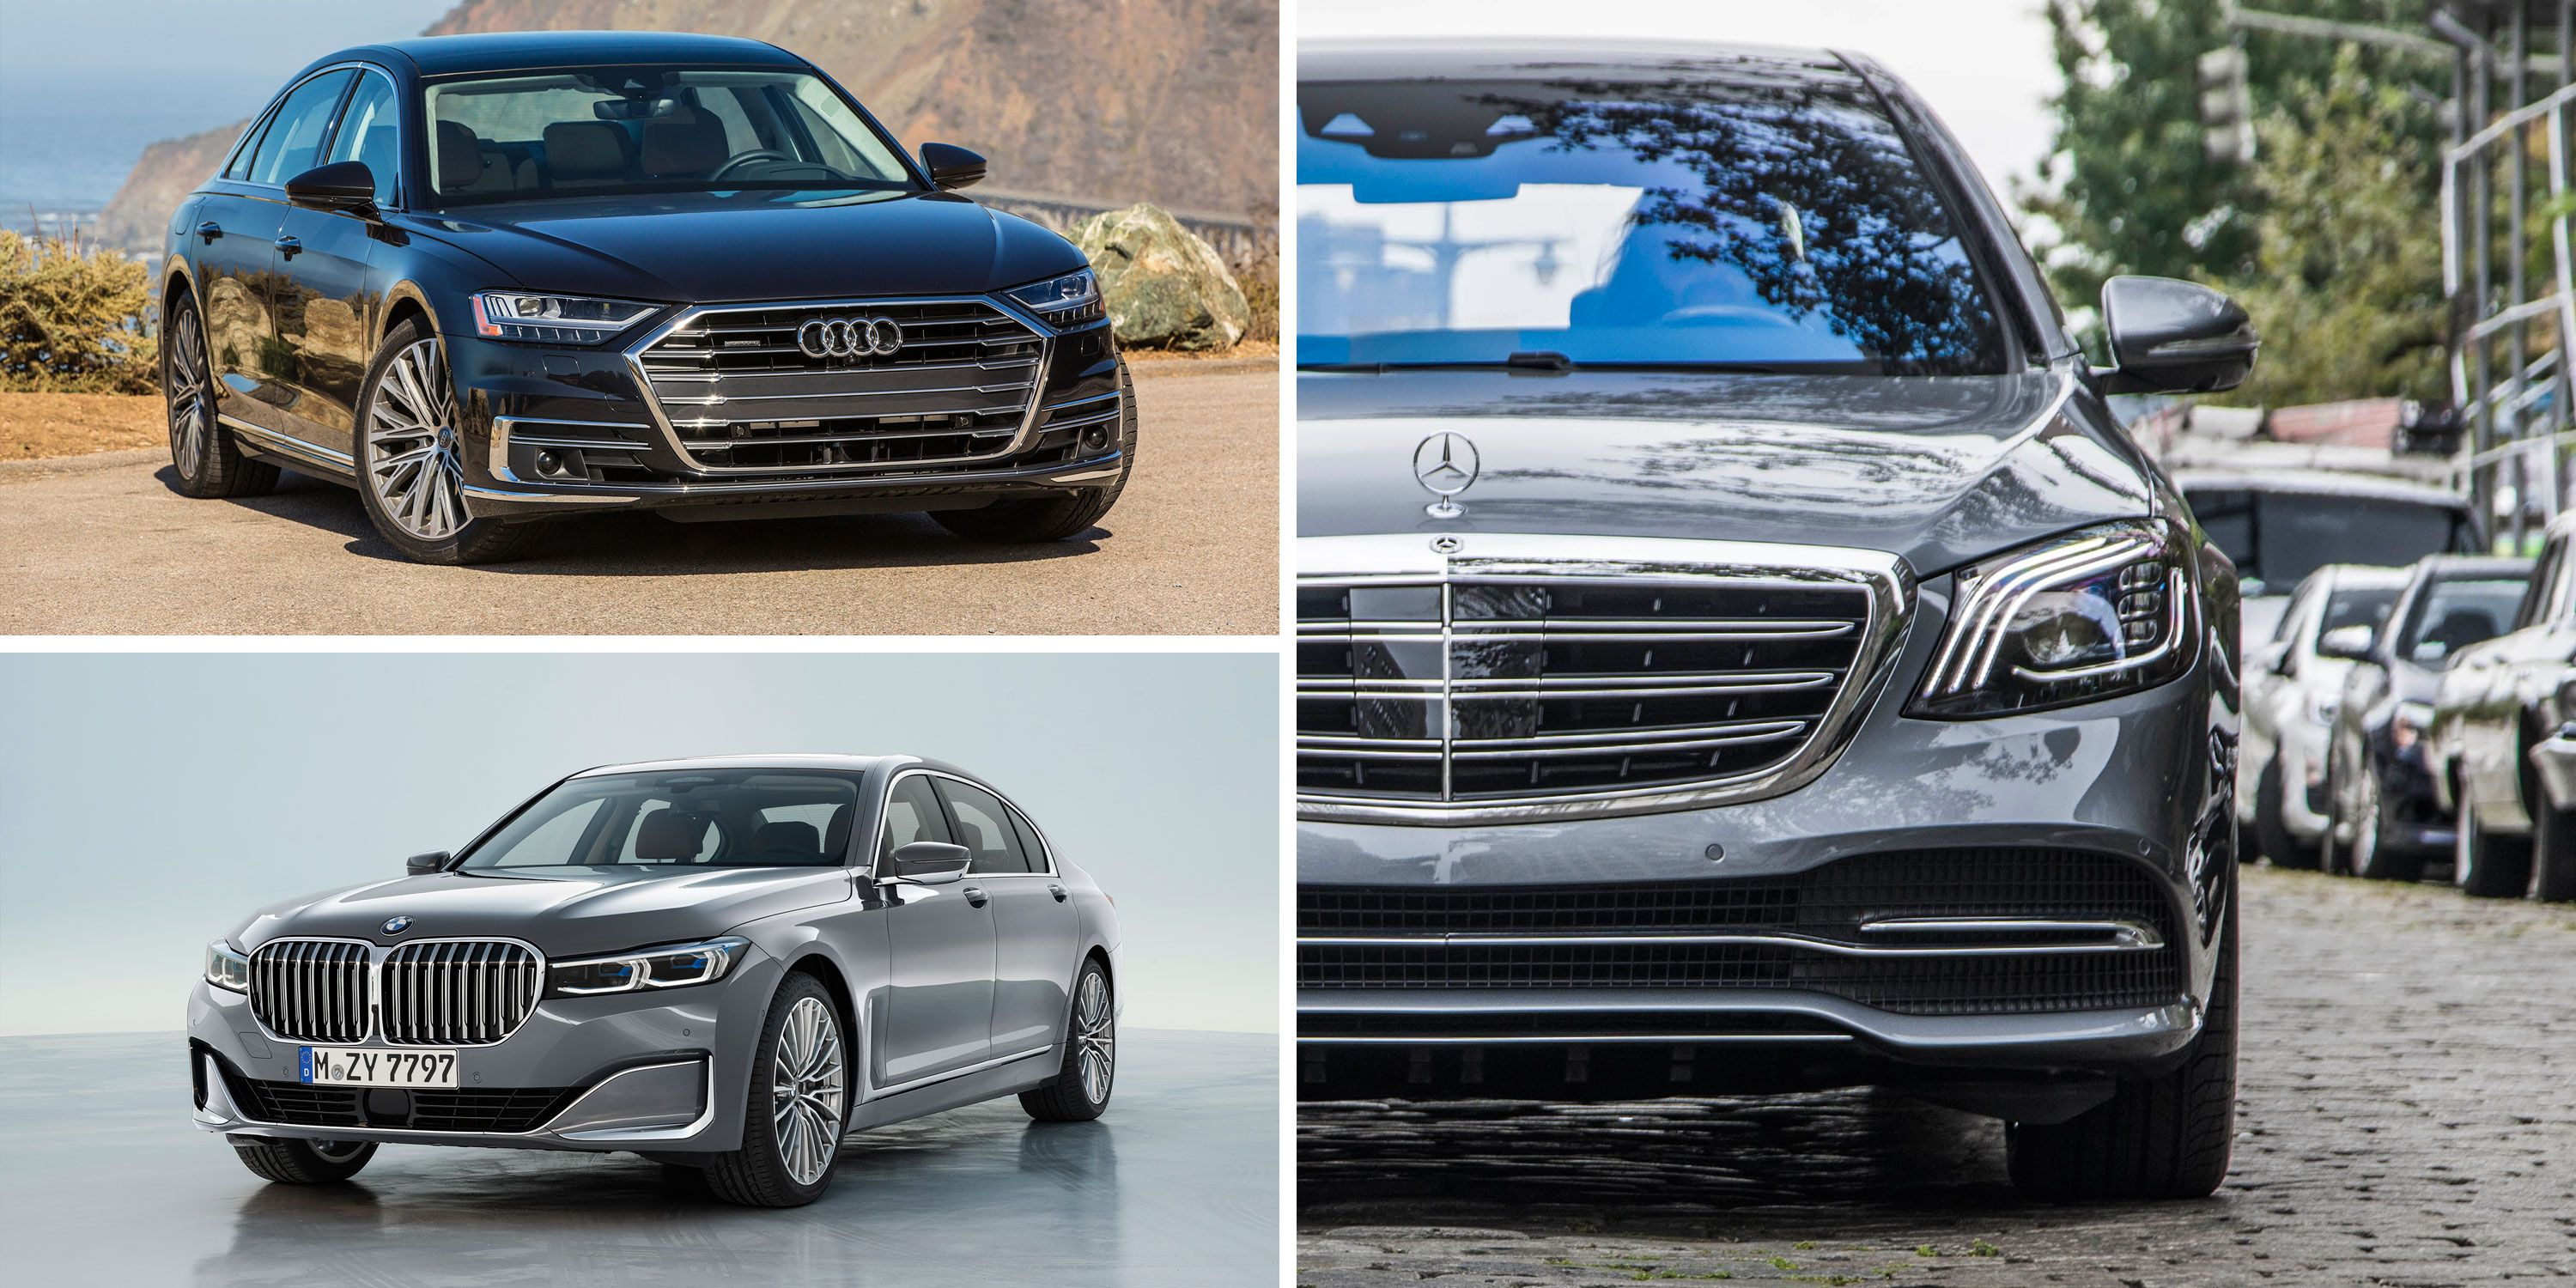 Every Full-Size Luxury Car You Probably Can't Afford Ranked from Worst to Best